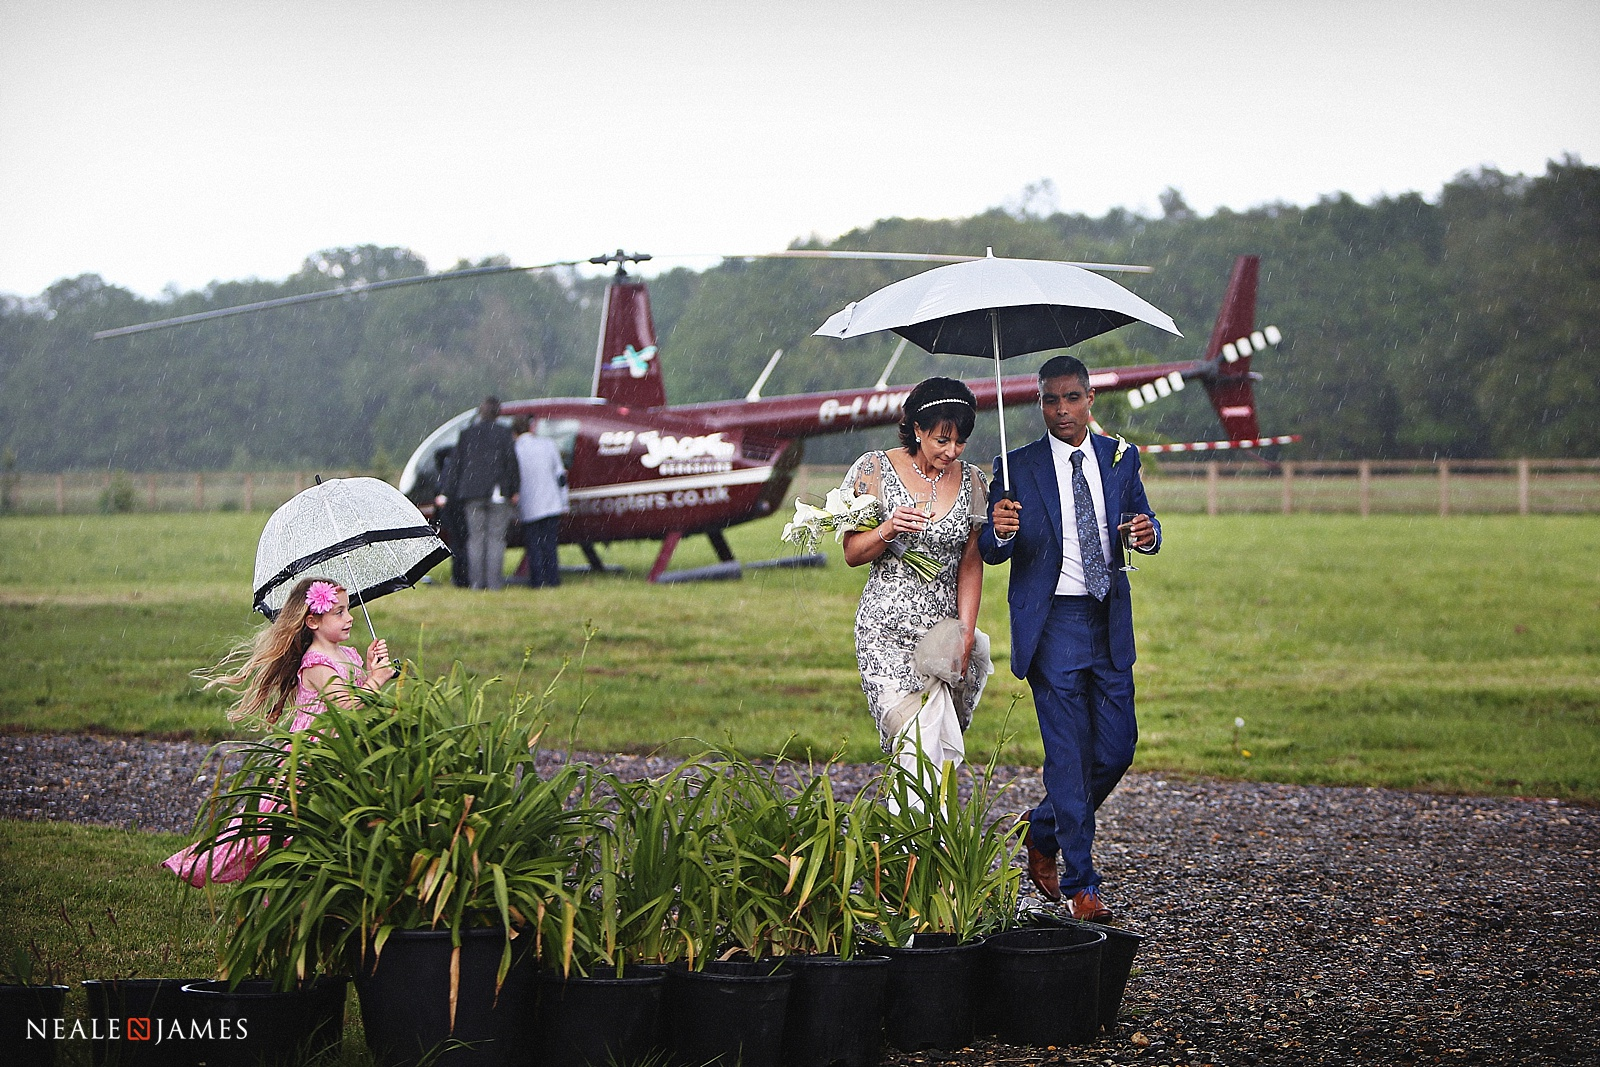 A bride and groom arrive by helicopter in the rain